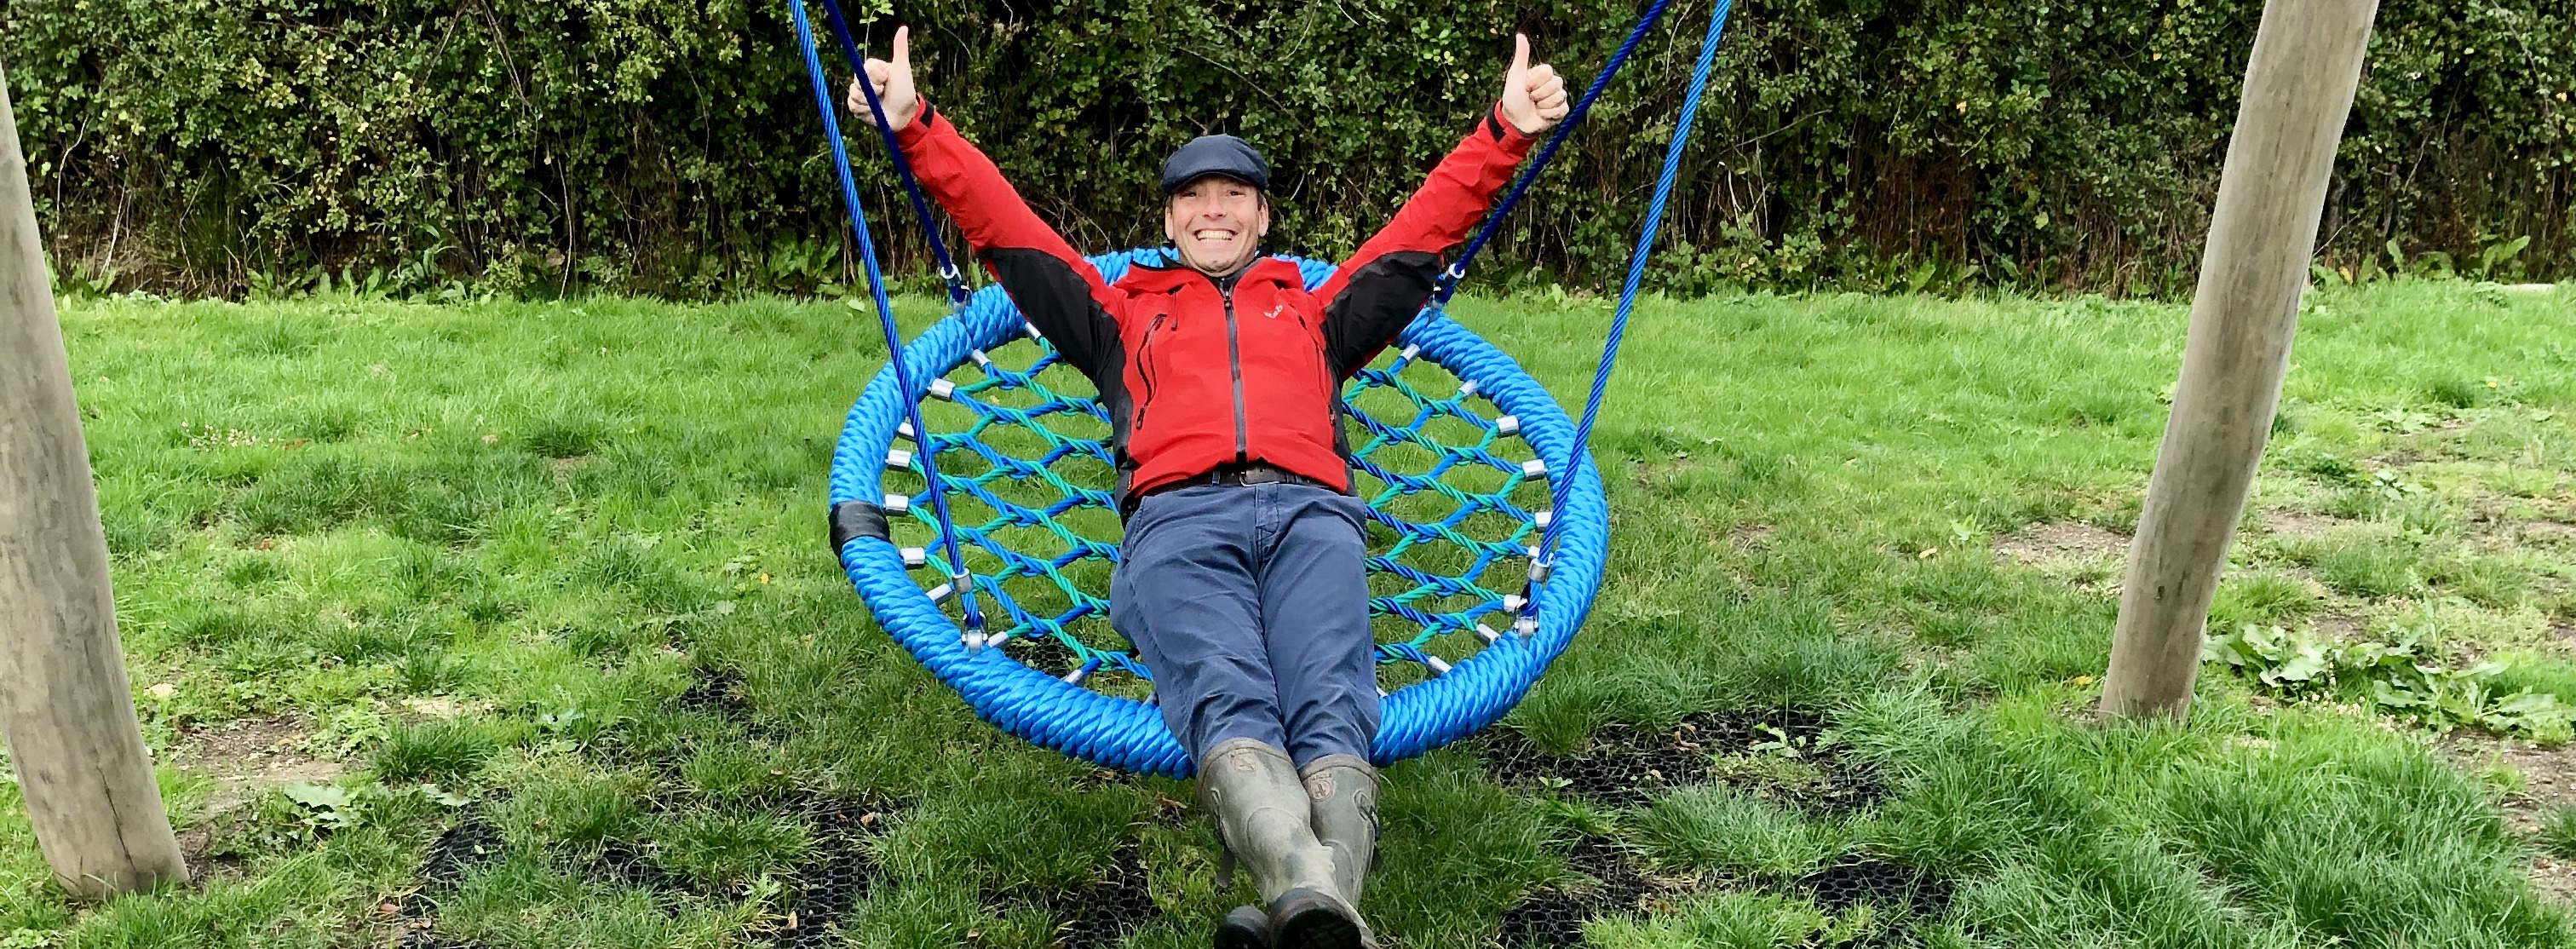 Cllr Tony Piedade on the new Crowsnest swing